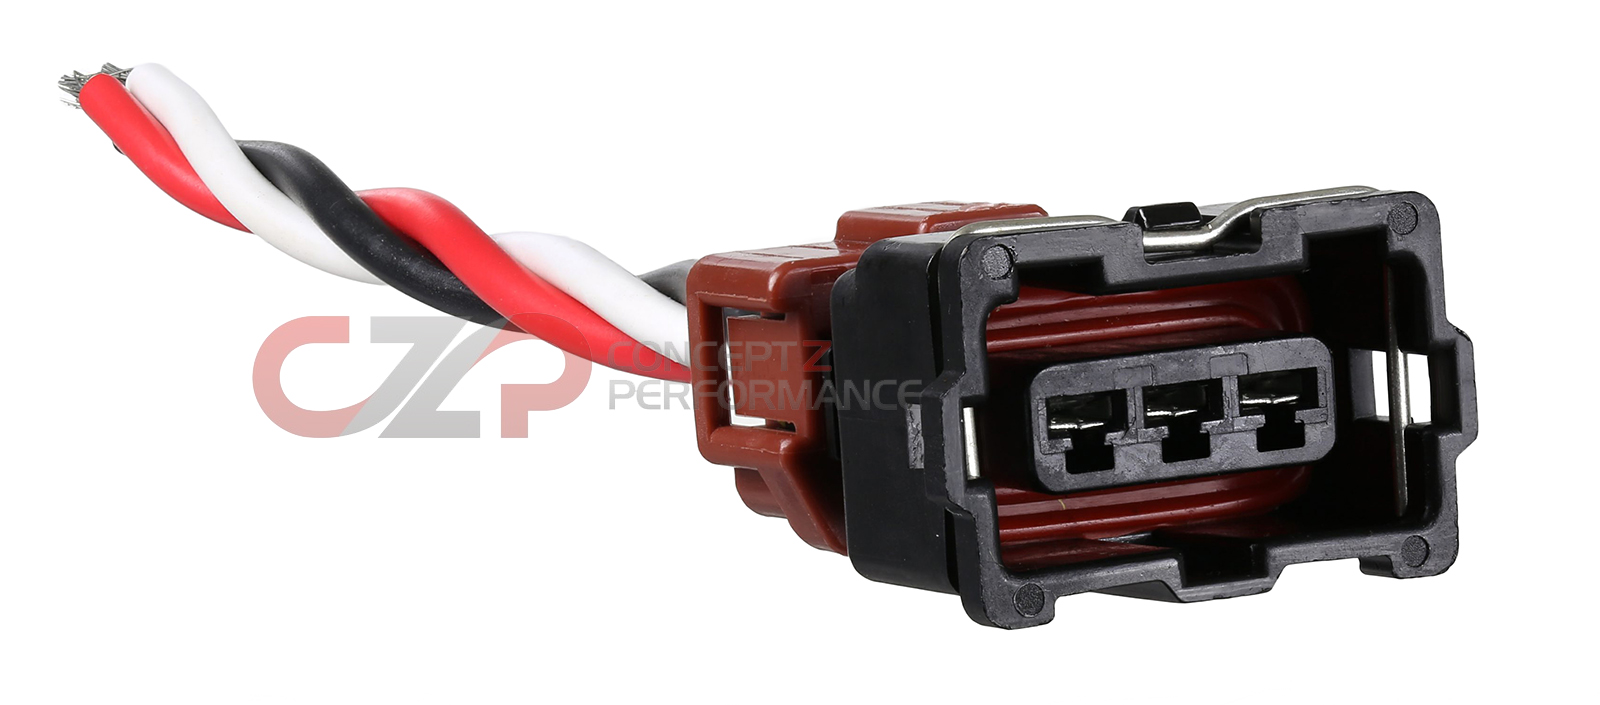 wiring specialties throttle positioning sensor tps connector wiring specialties throttle positioning sensor tps connector nissan 300zx 90 95 z32